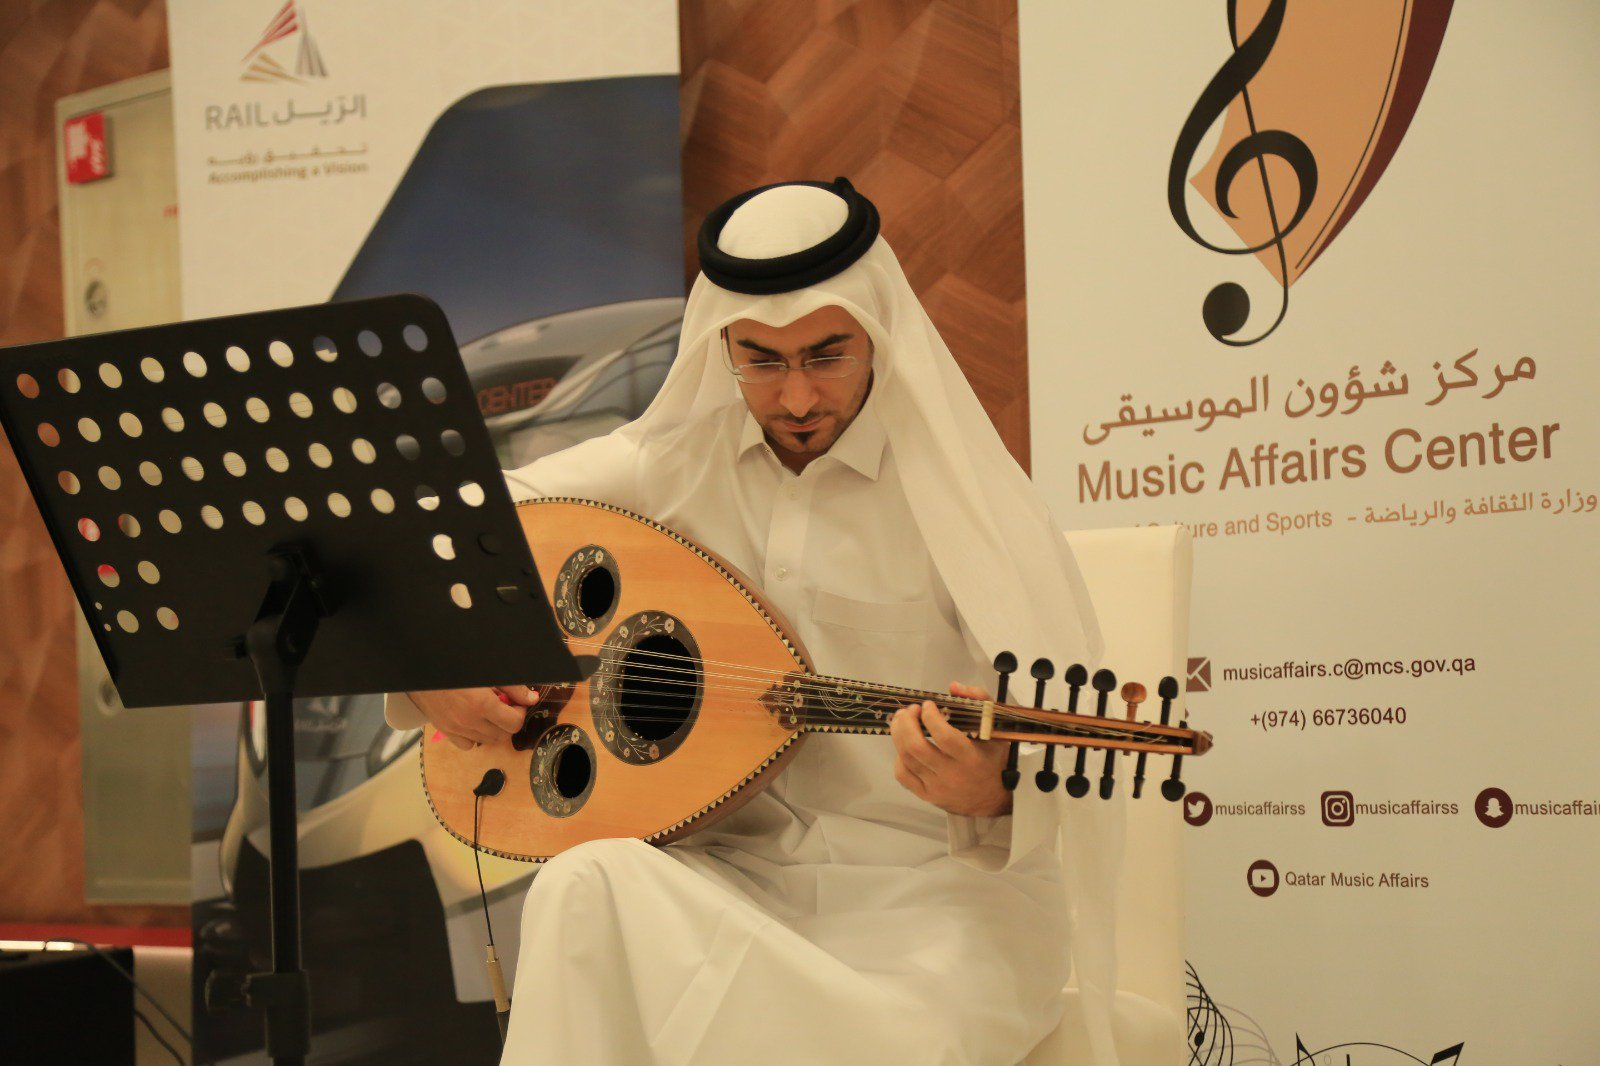 Music Affairs Center to Participate in Msheireb Downtown Doha Initiative